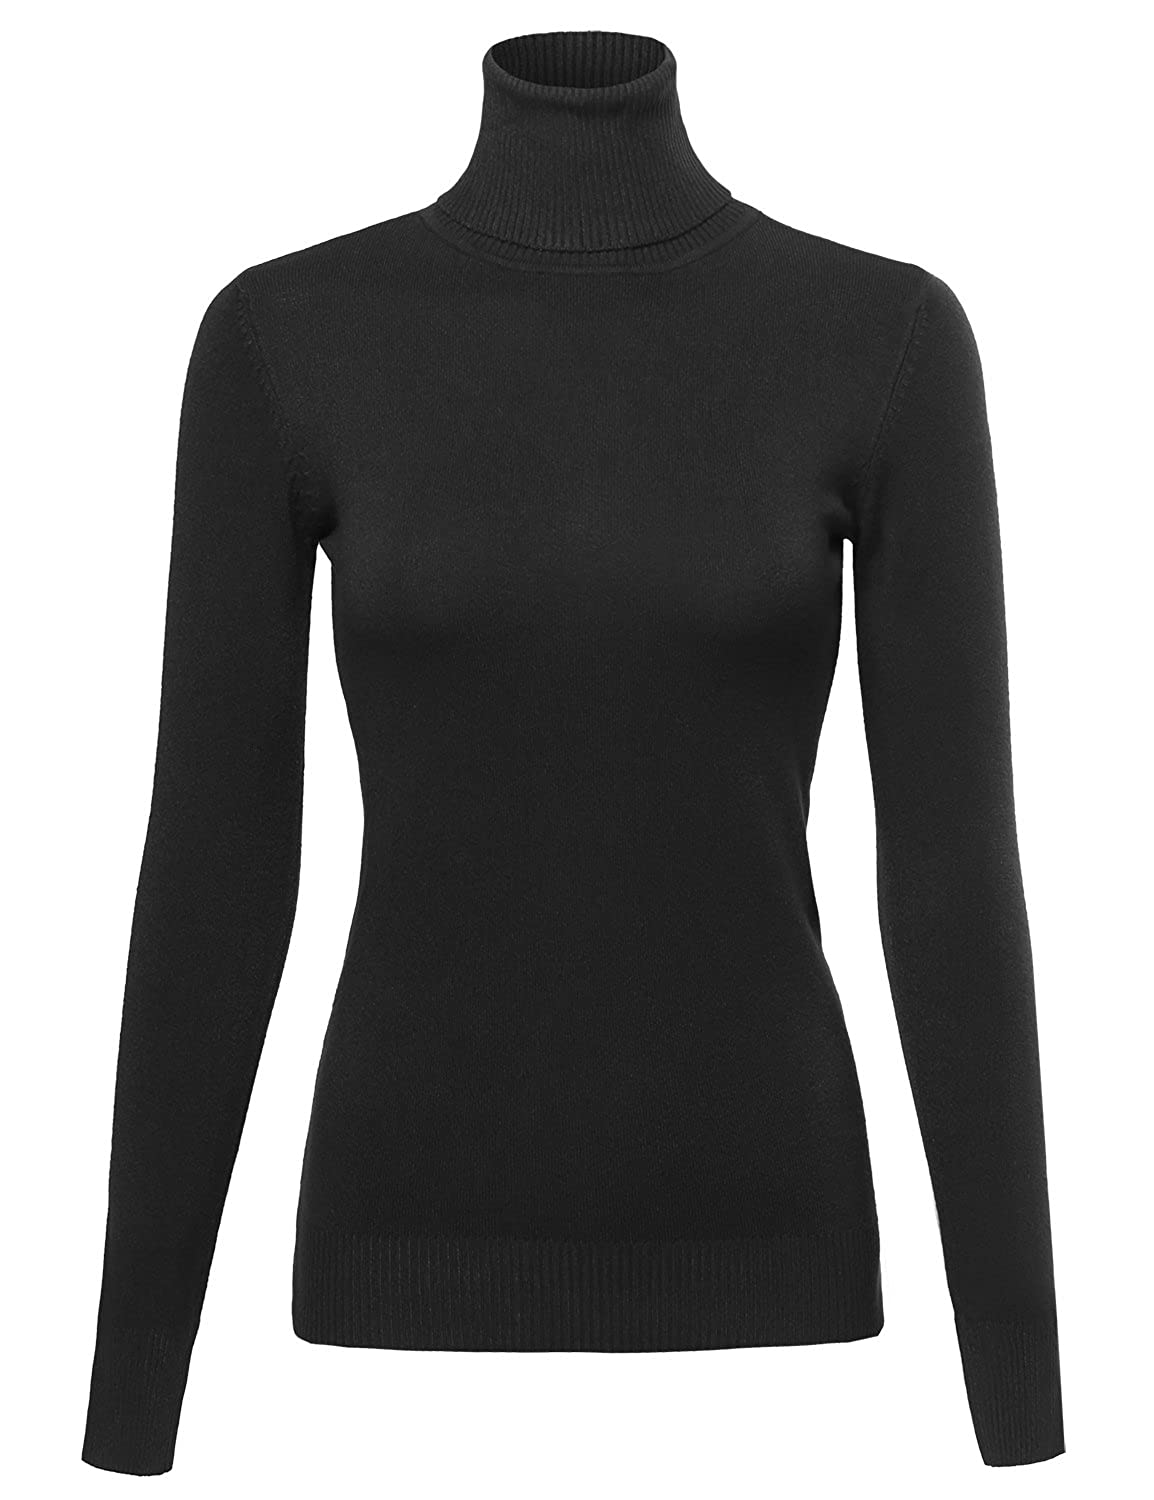 Made by Emma Women's Basic Slim Fit Lightweight Ribbed Turtleneck ...